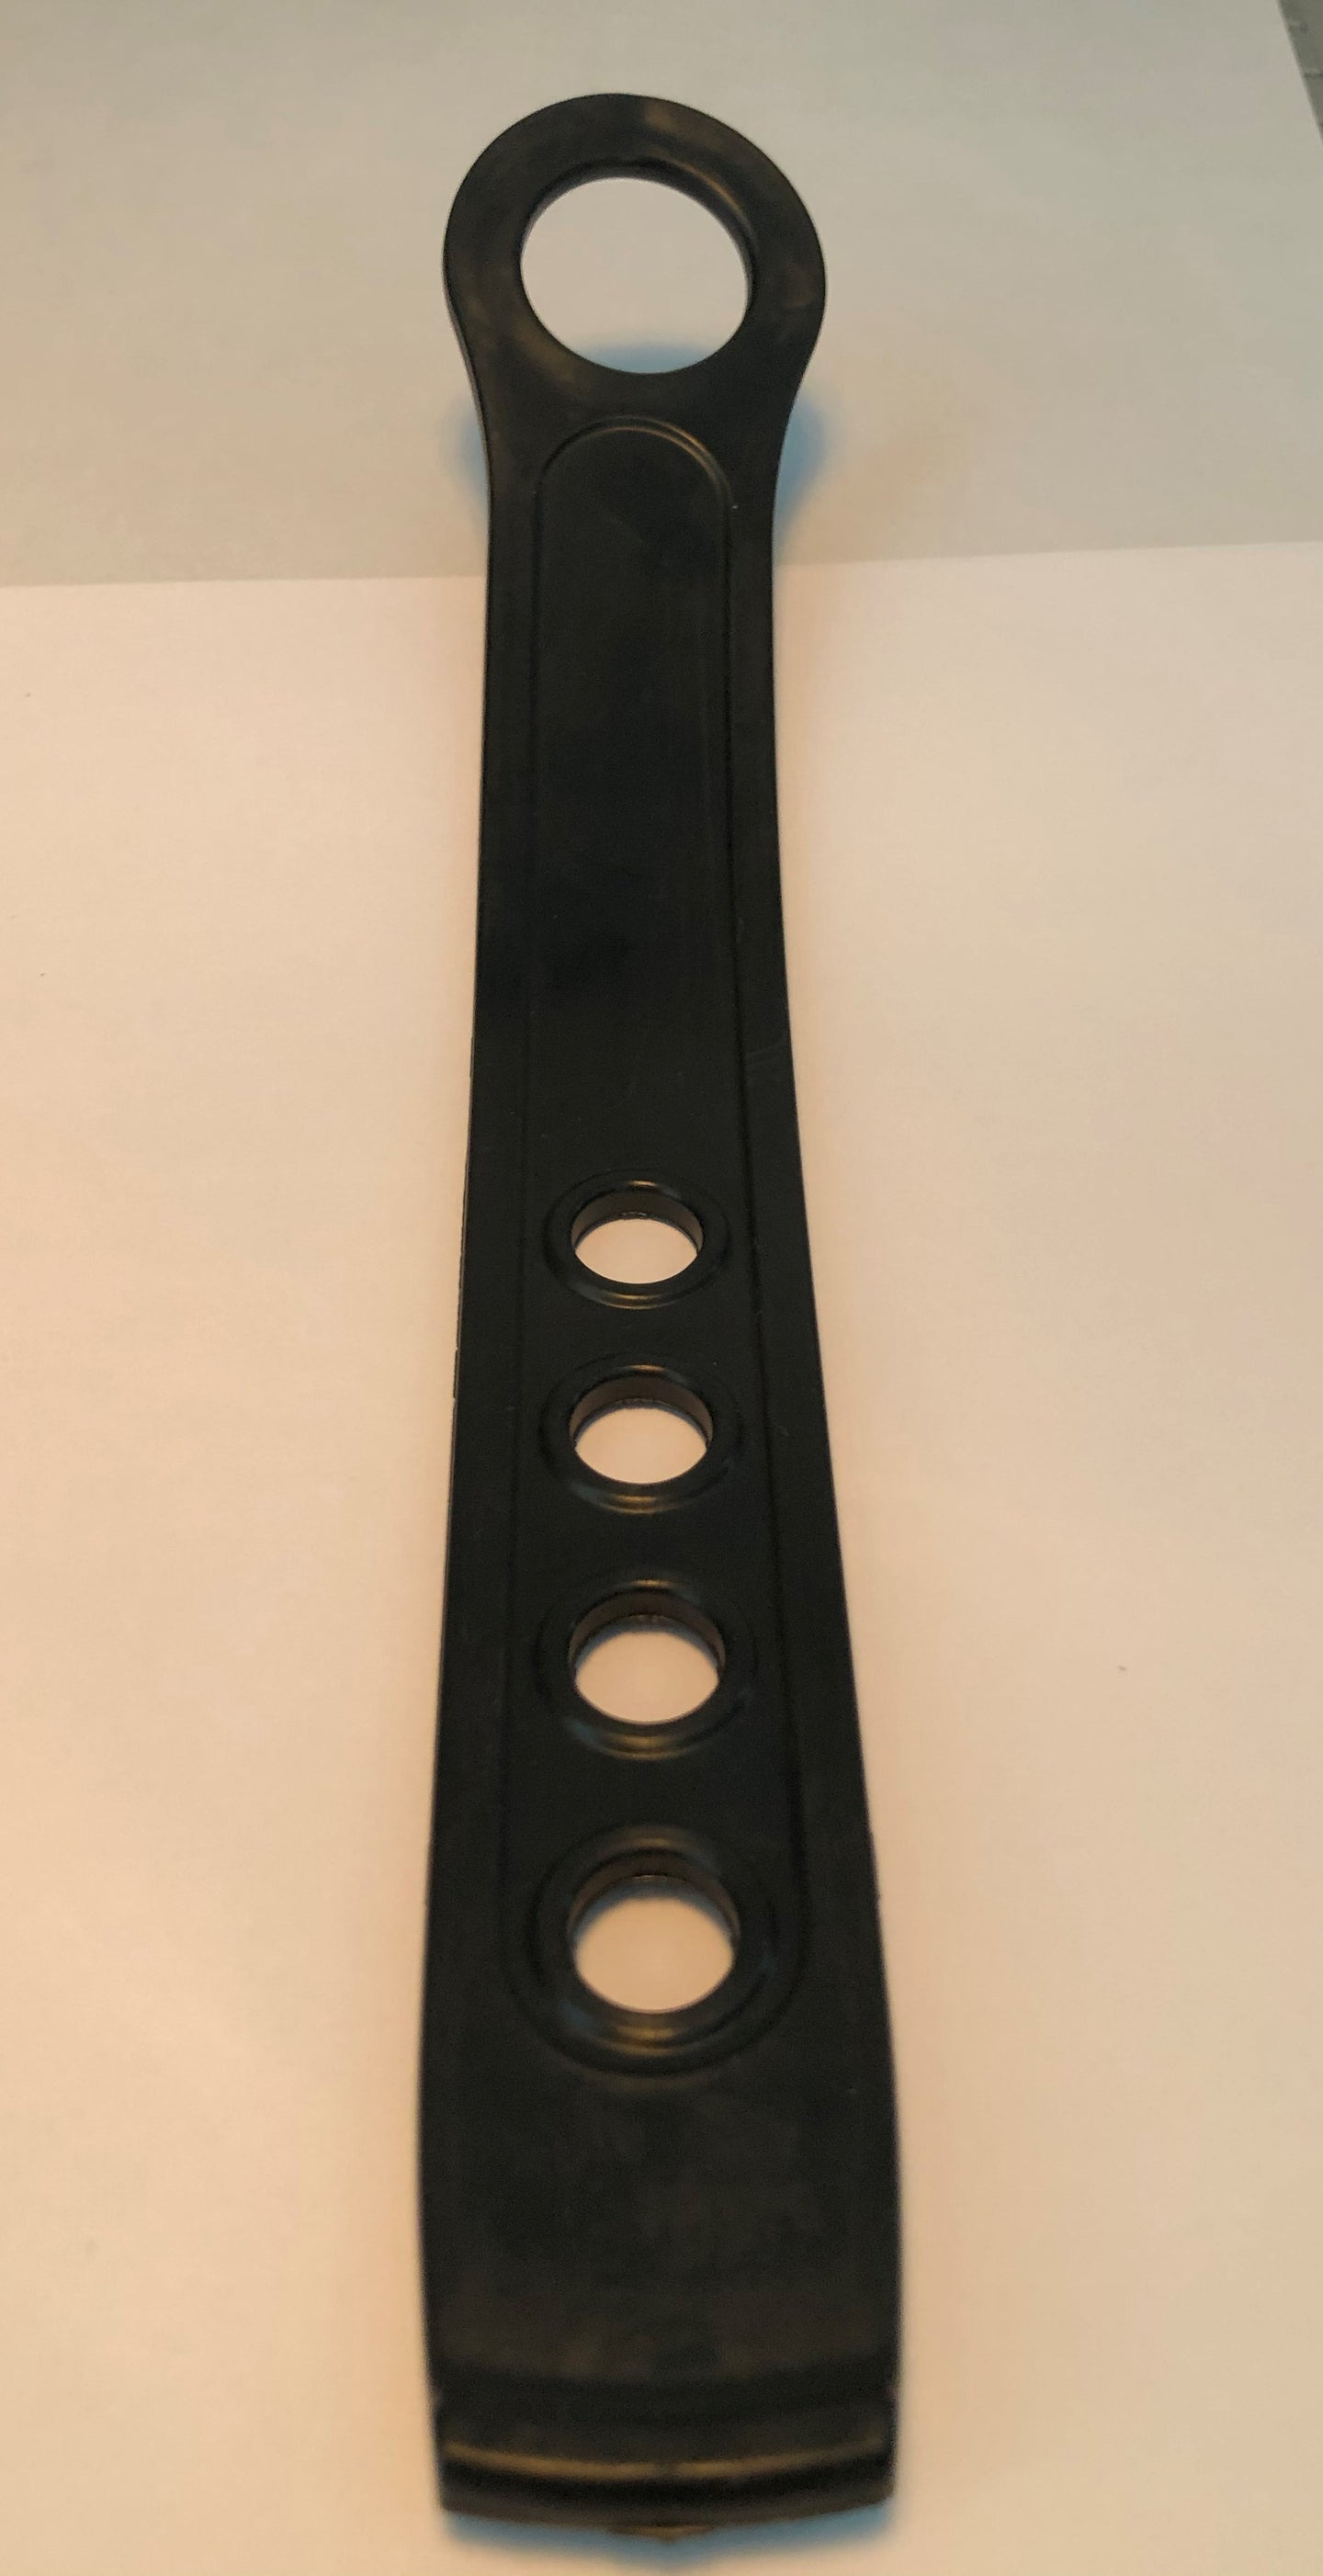 Tire Tie down strap - single